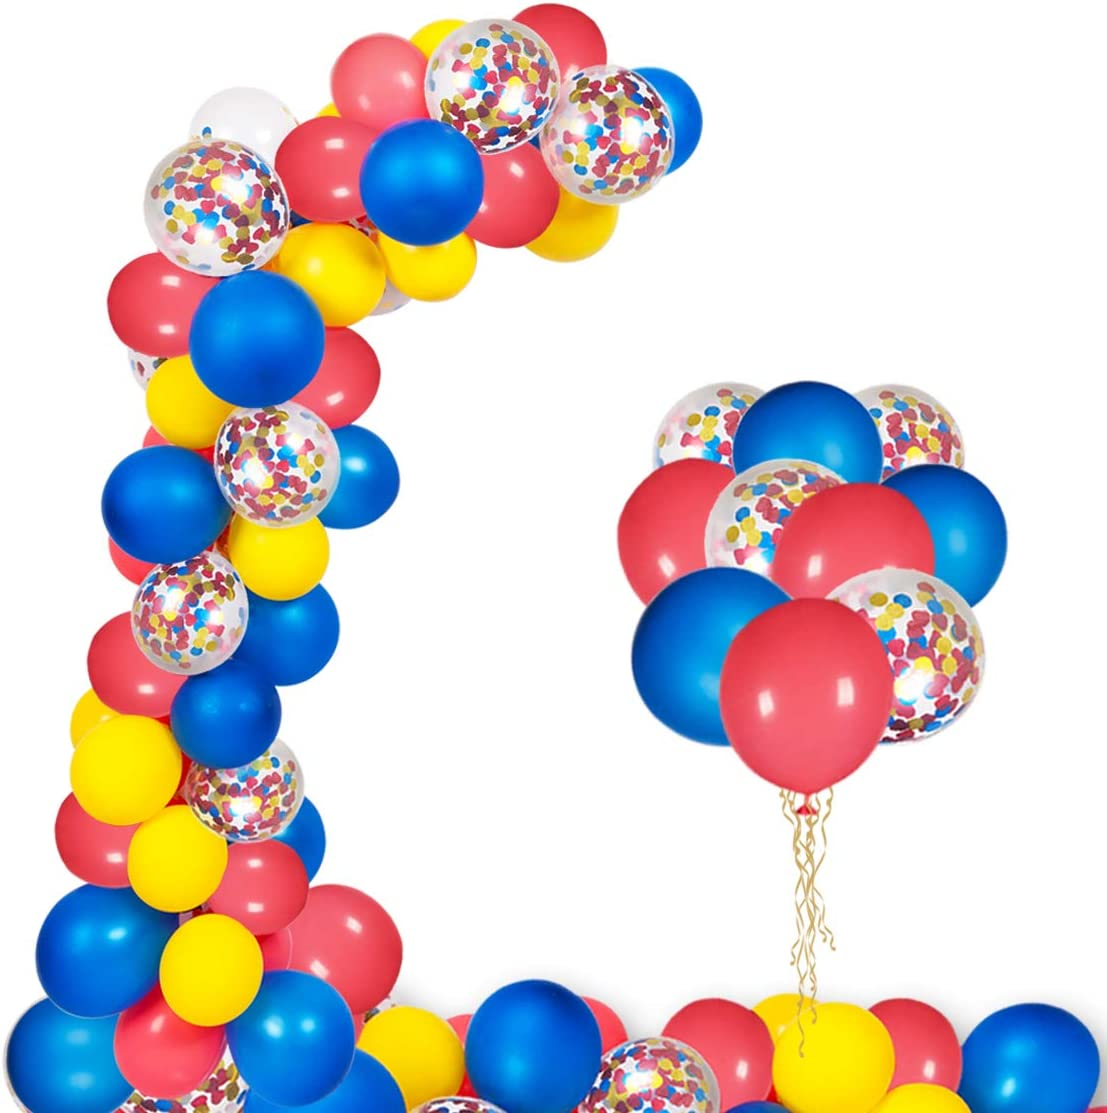 NPLUX Circus Balloons Arch Kit 130pcs Red Blue Yellow Confetti Latex Balloons Garland for Birthday Graduation Carnival Party Decor